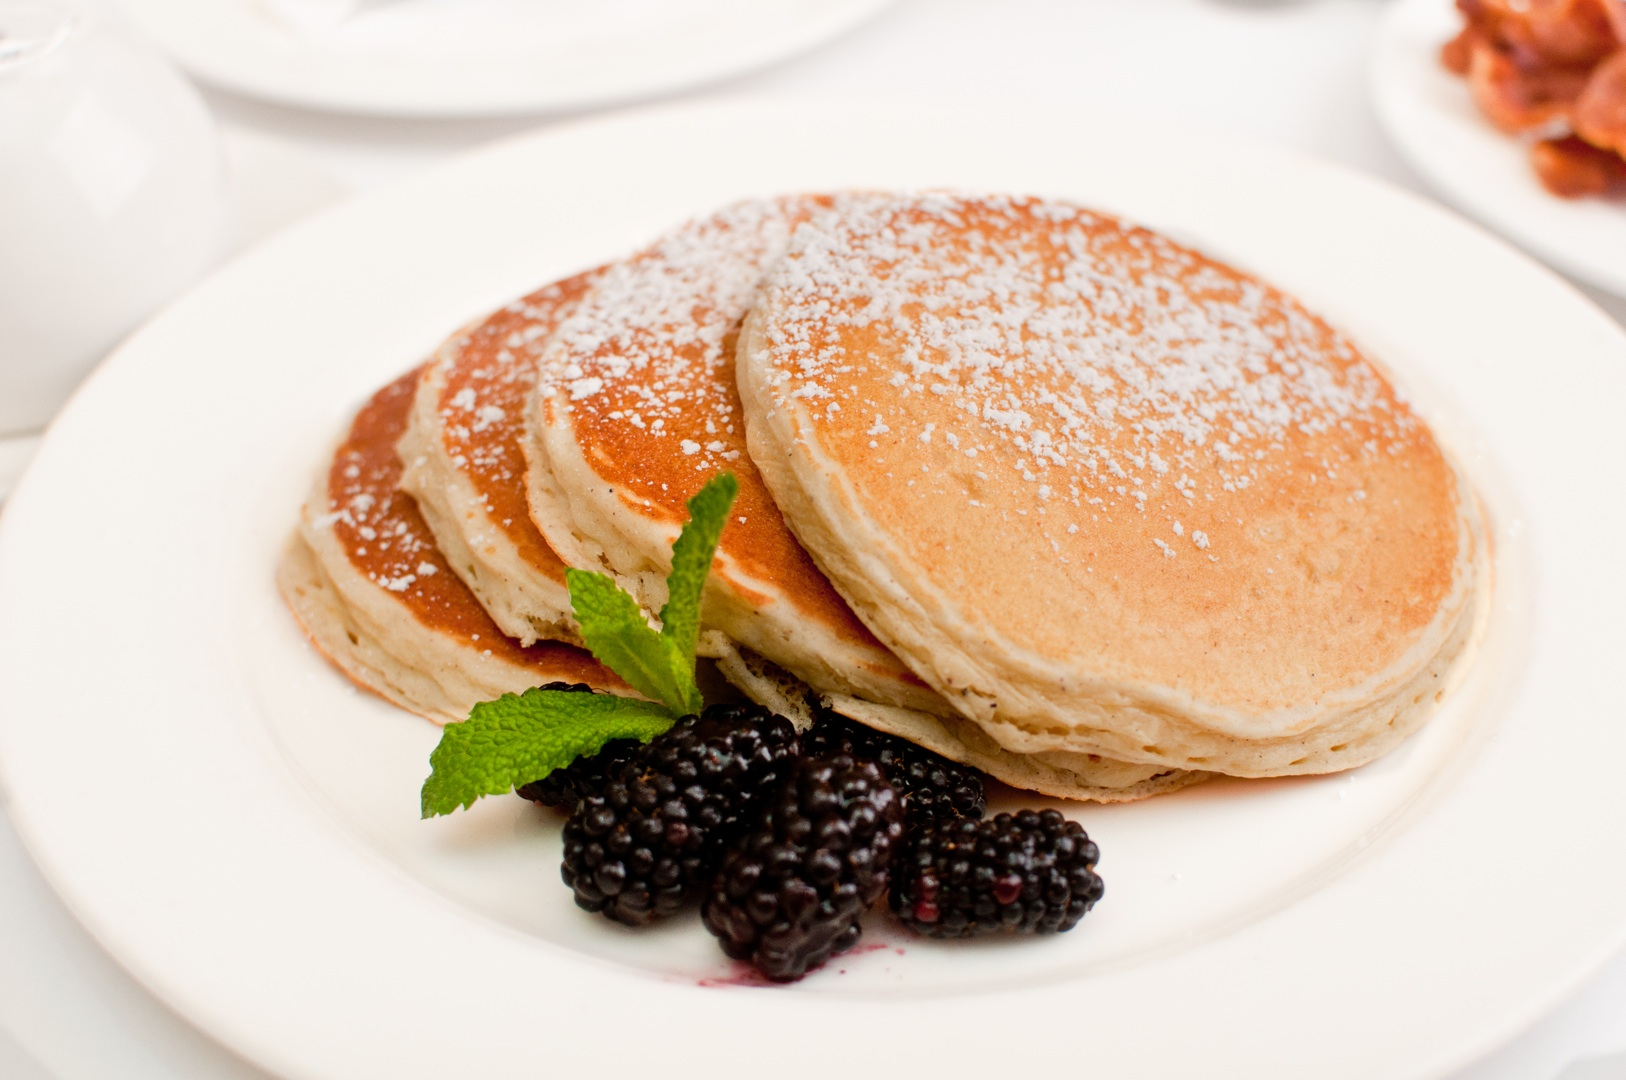 Lemon Ricotta Pancakes - Image courtesy of Sarabeth's